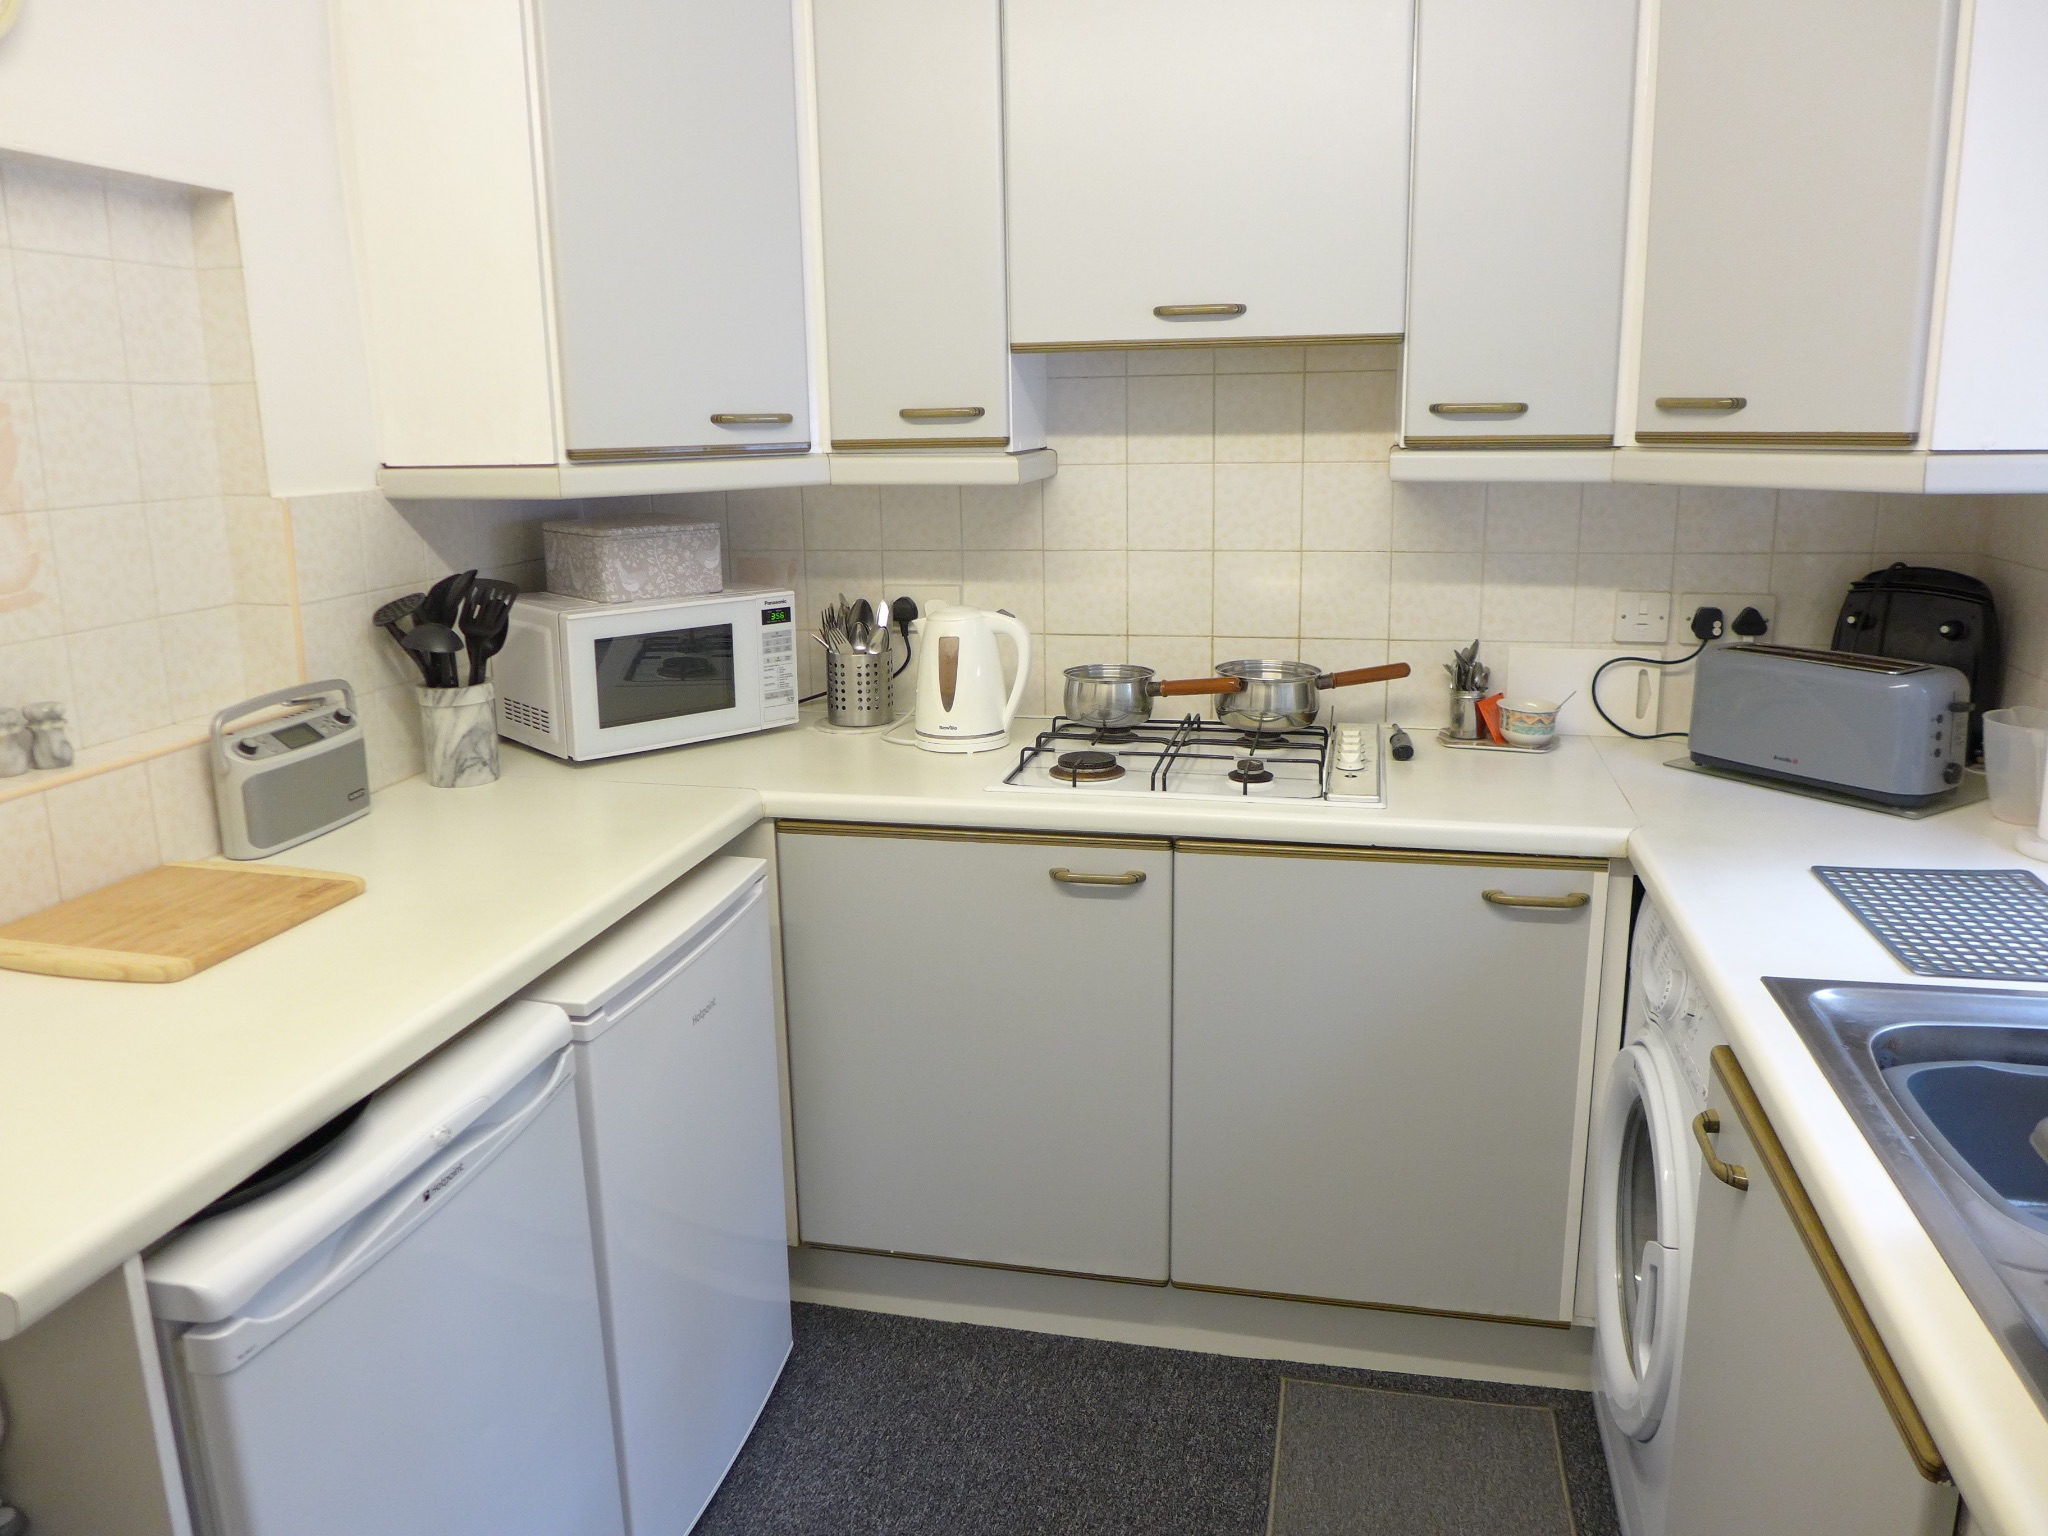 3 bedroom mid terraced house For Sale in Calderdale - Photograph 7.